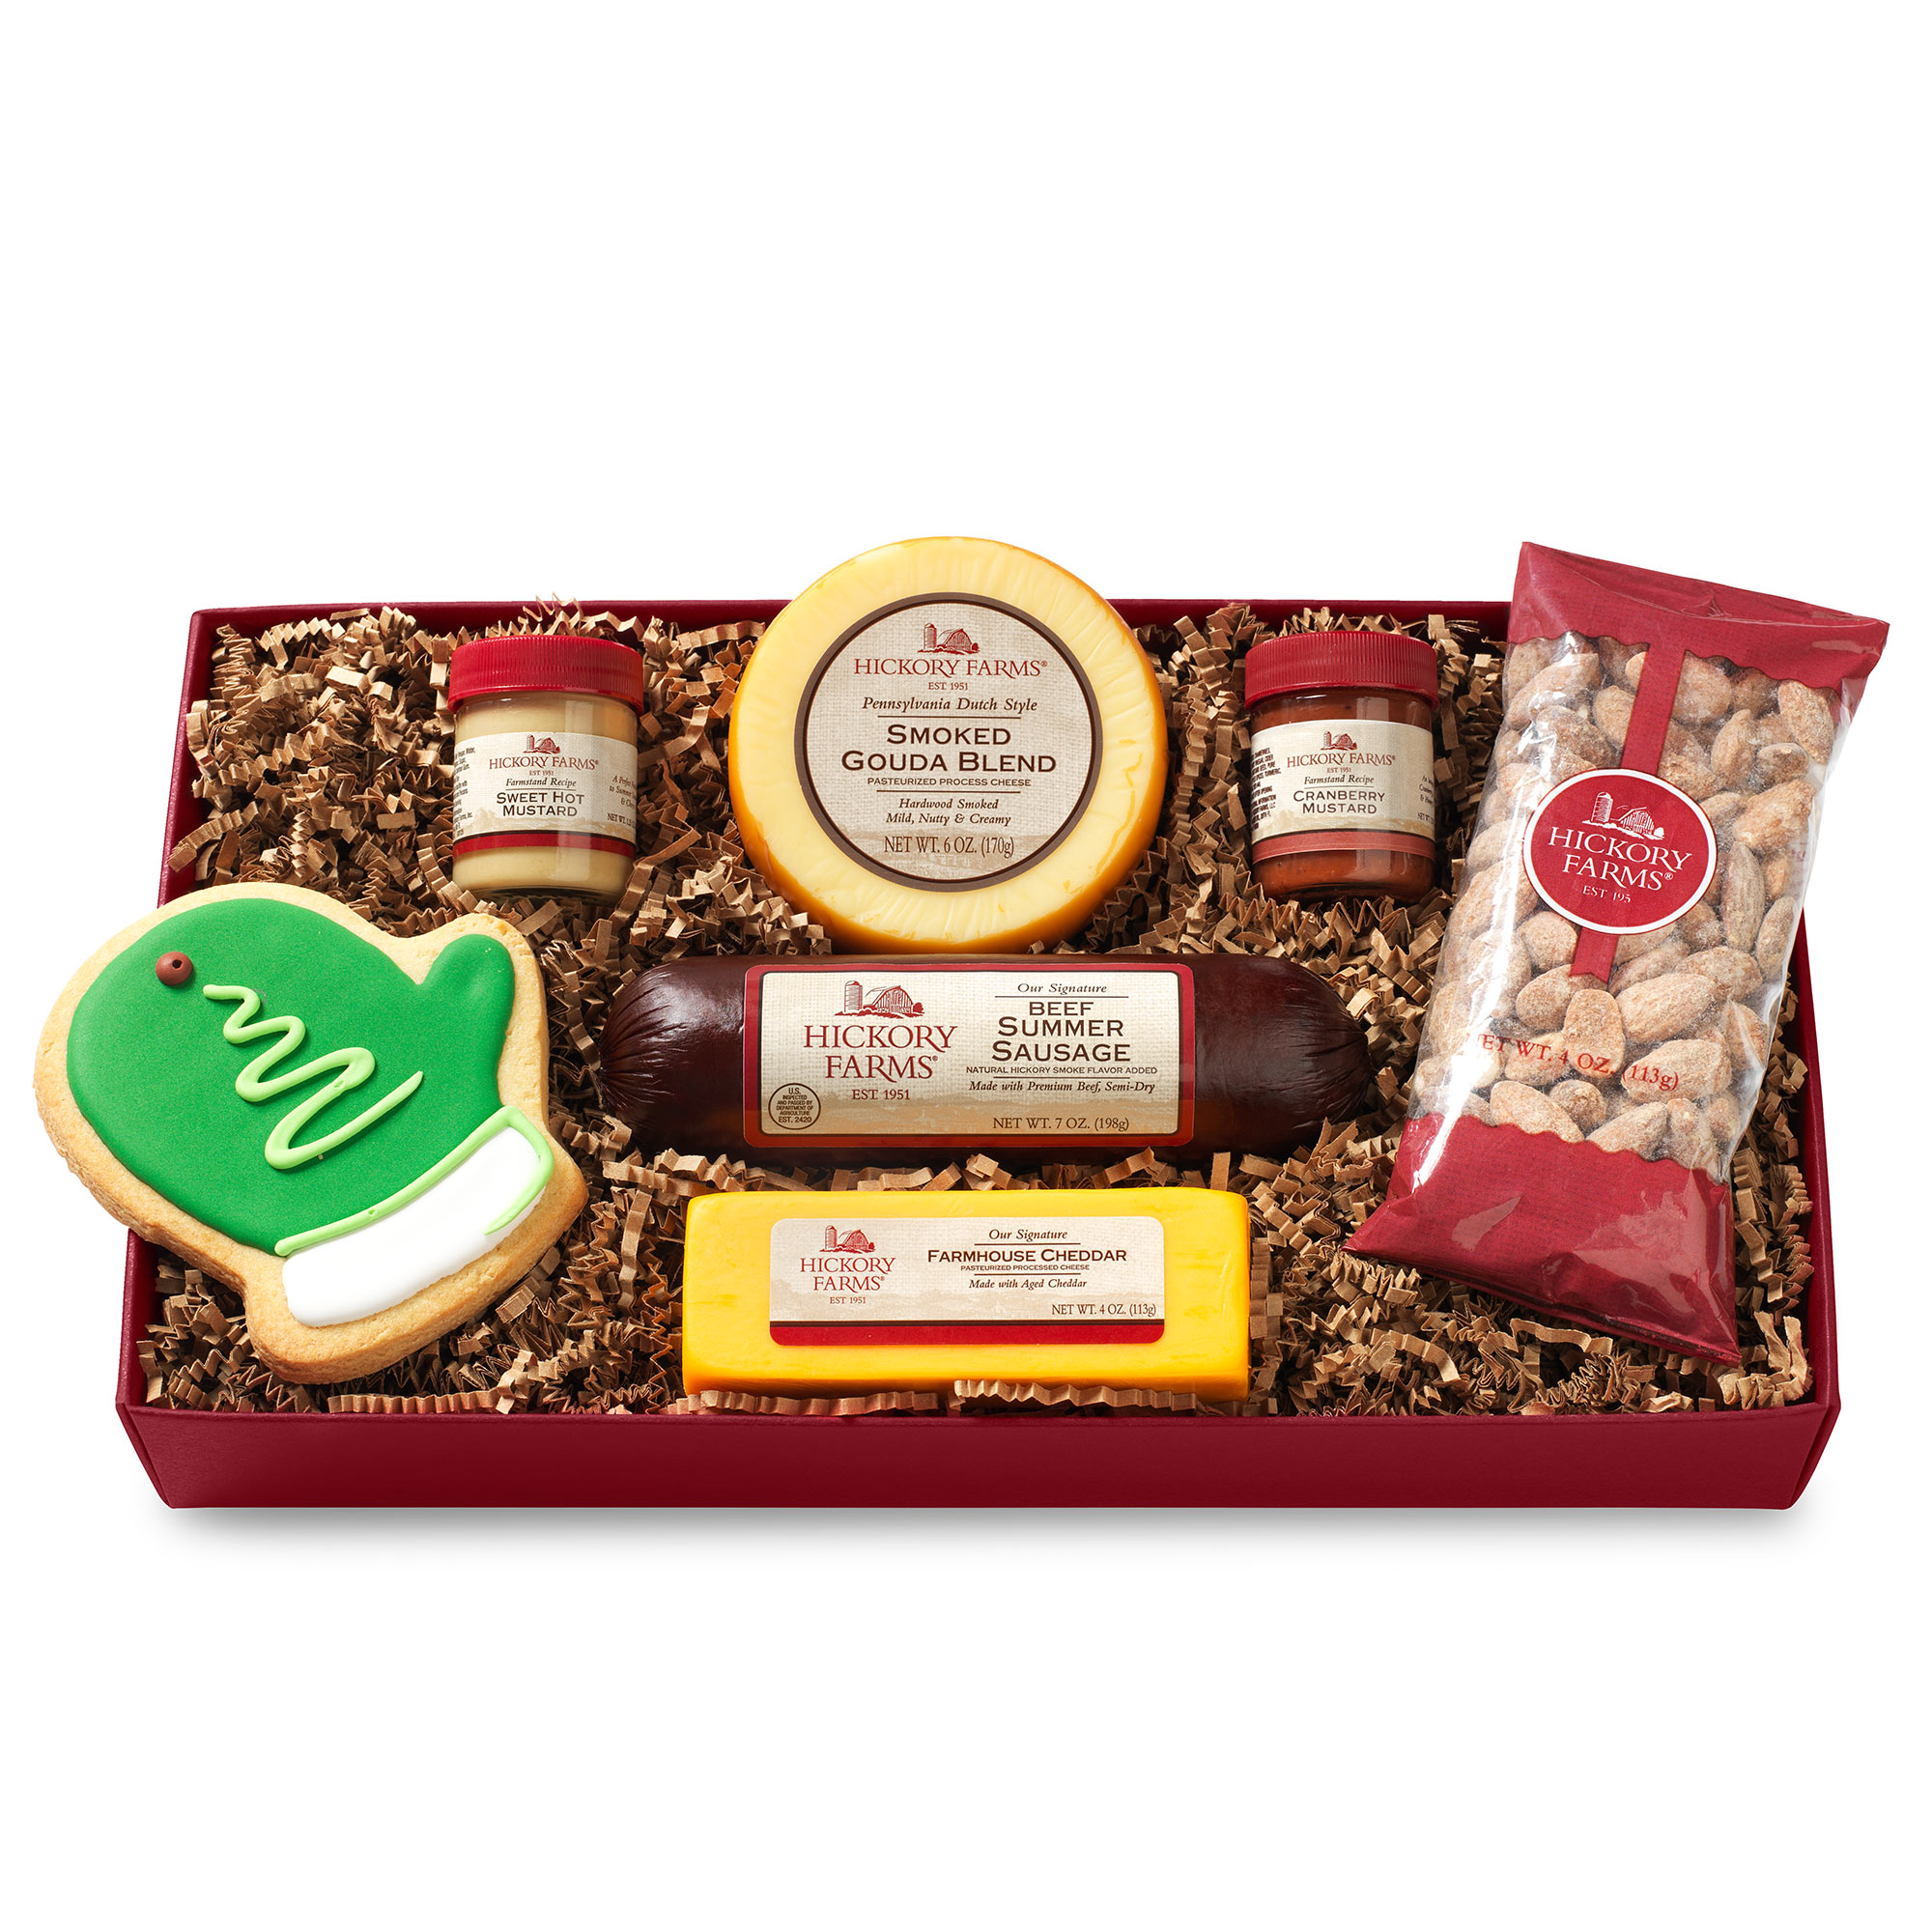 Hickory Farms Holiday Cravings Assortment Gift Box | Hickory Farms